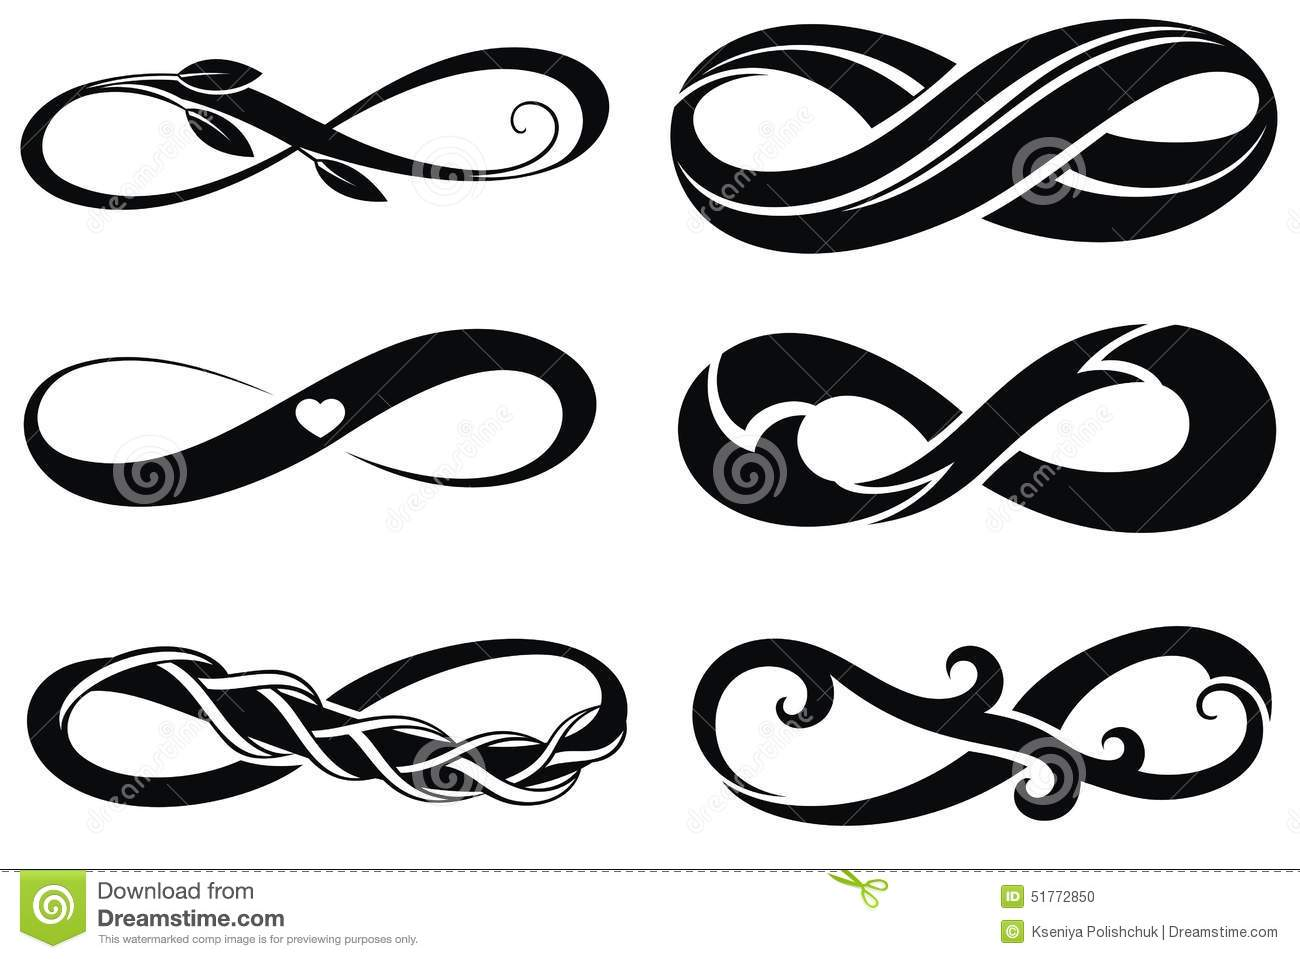 10 infinity symbol vector images black infinity symbol stock vector infinity symbols and free. Black Bedroom Furniture Sets. Home Design Ideas